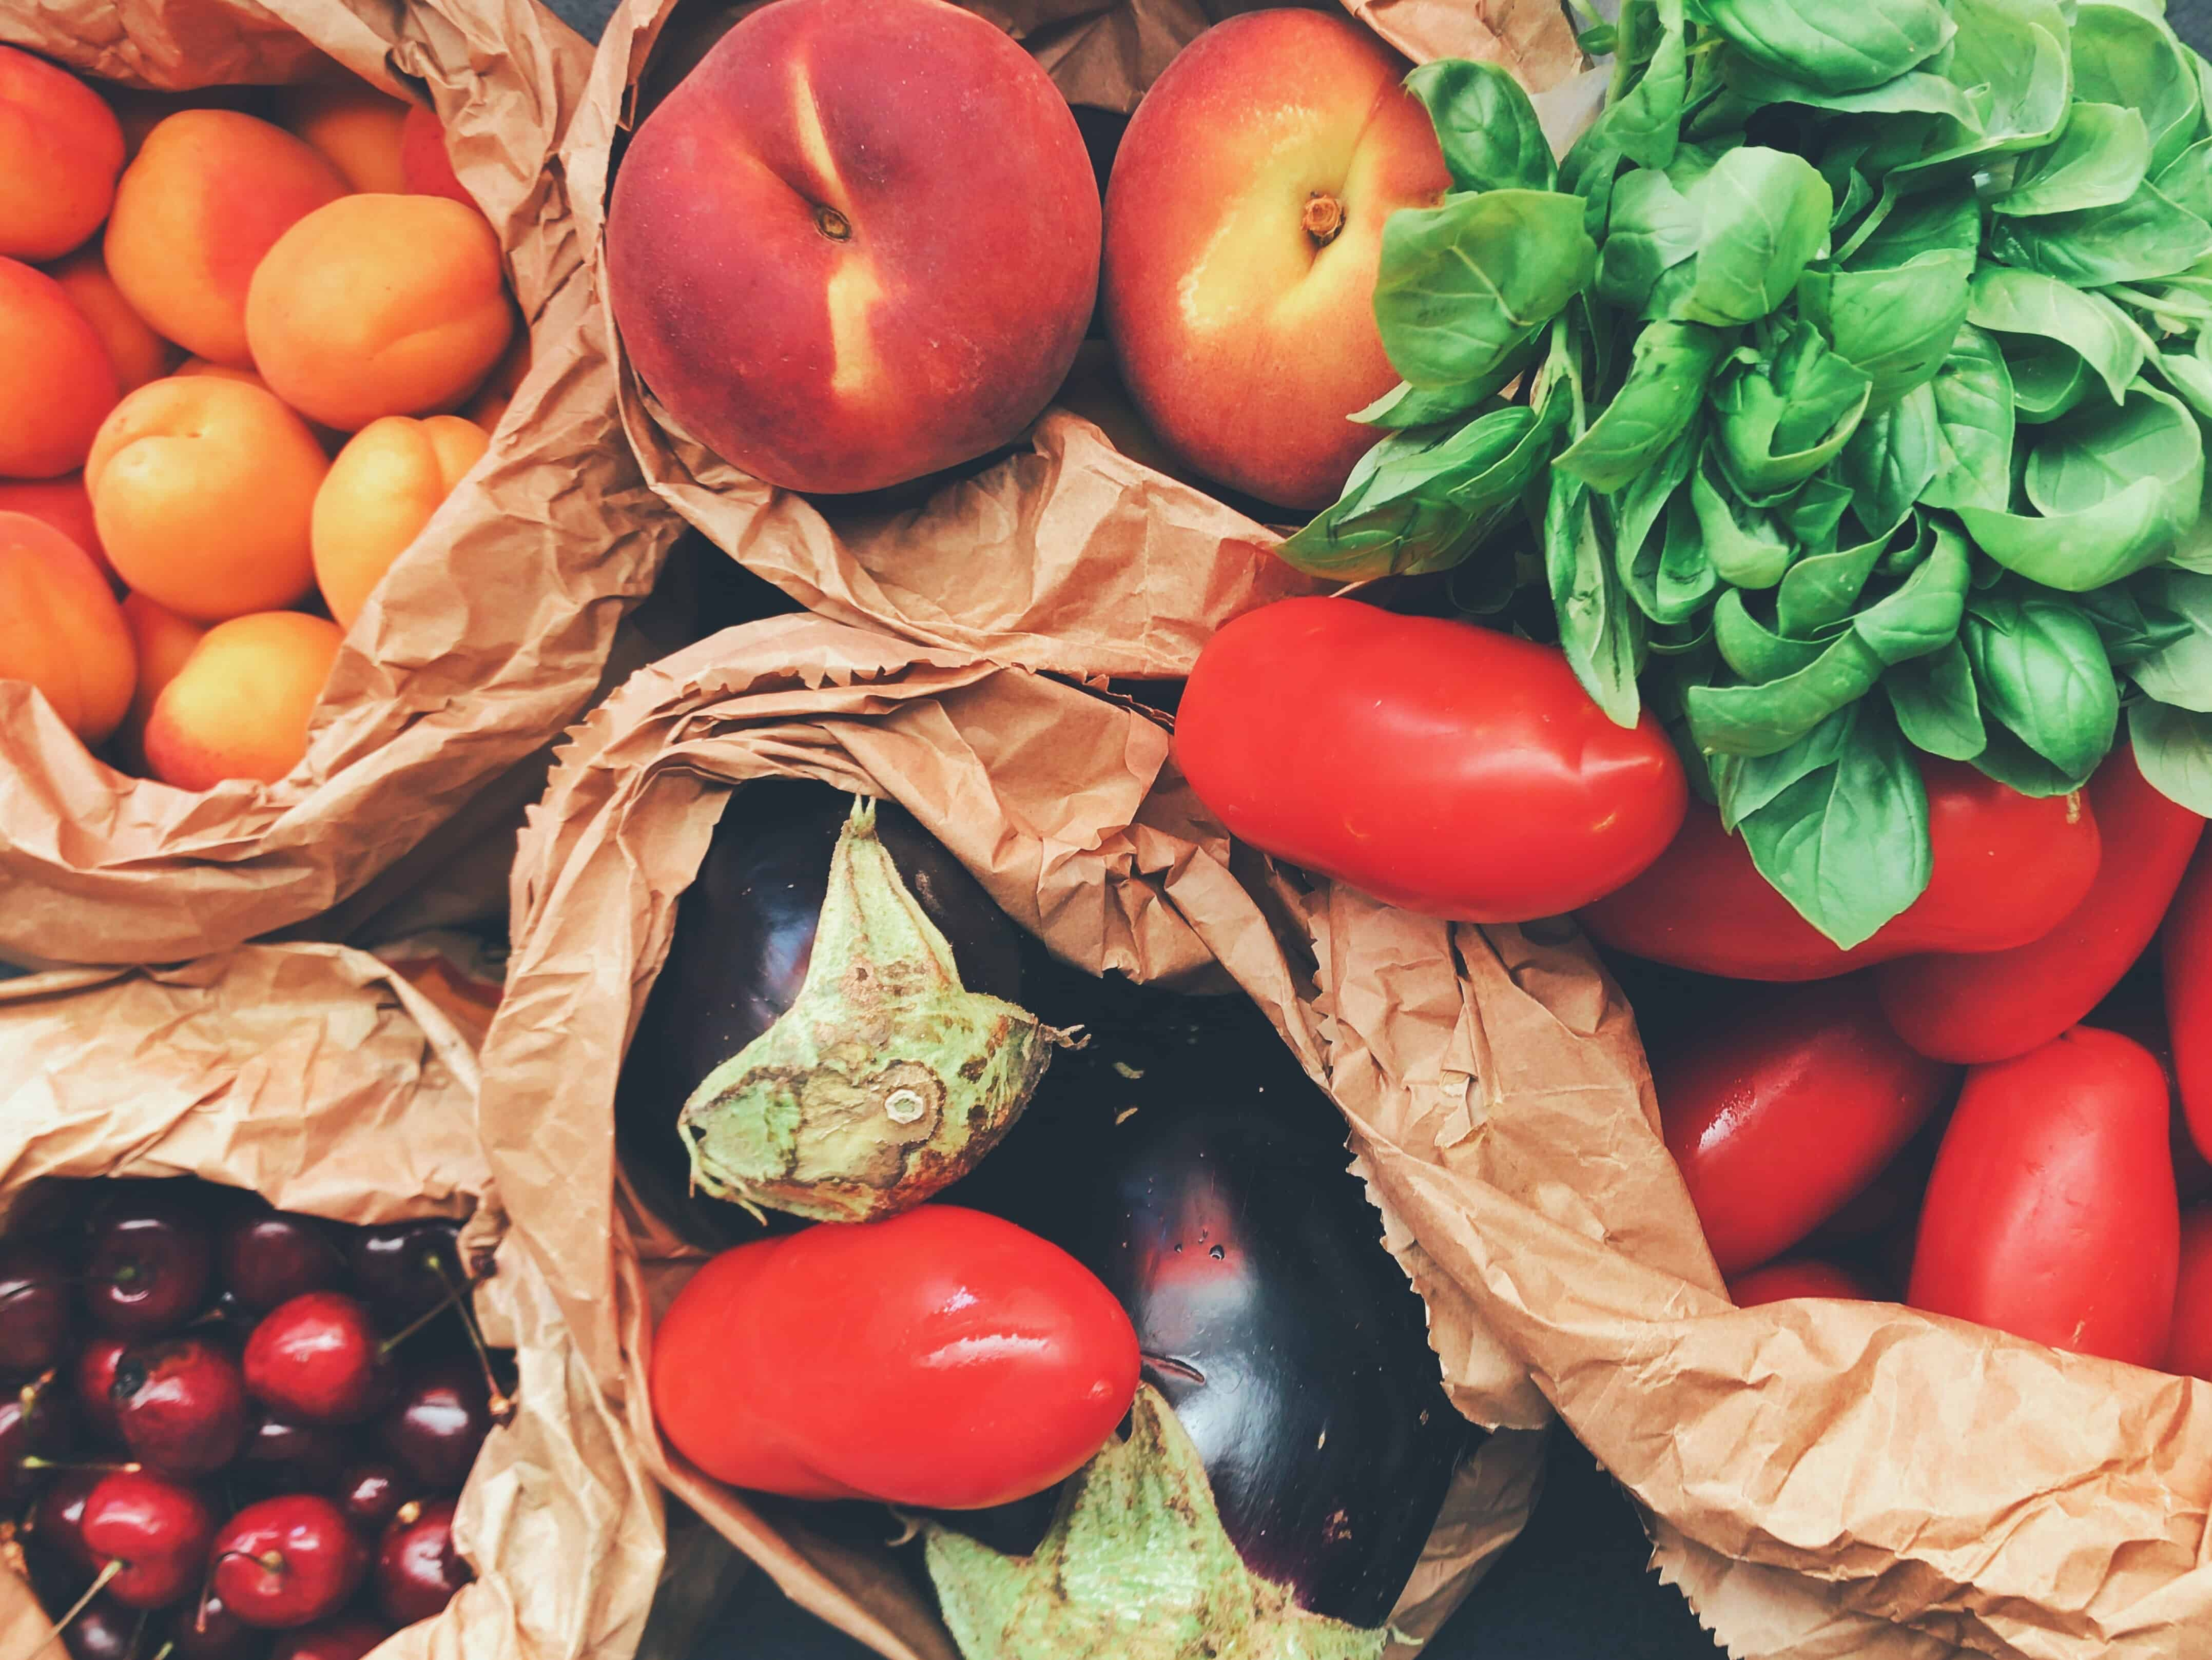 In season produce to save money